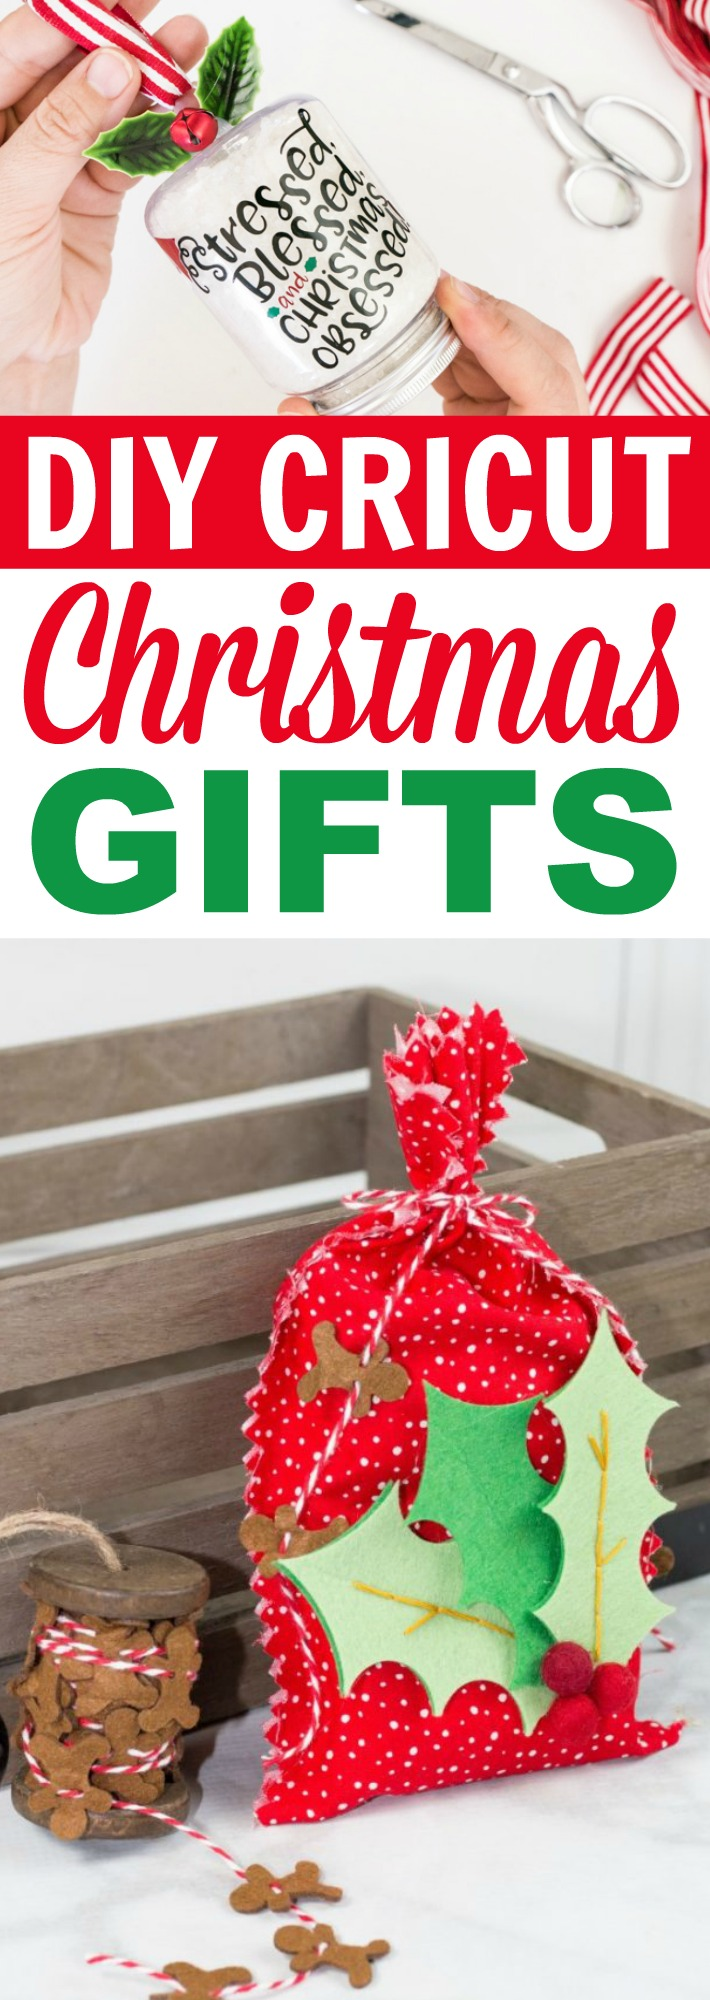 DIY Cricut Christmas Gifts - A Little Craft In Your Day